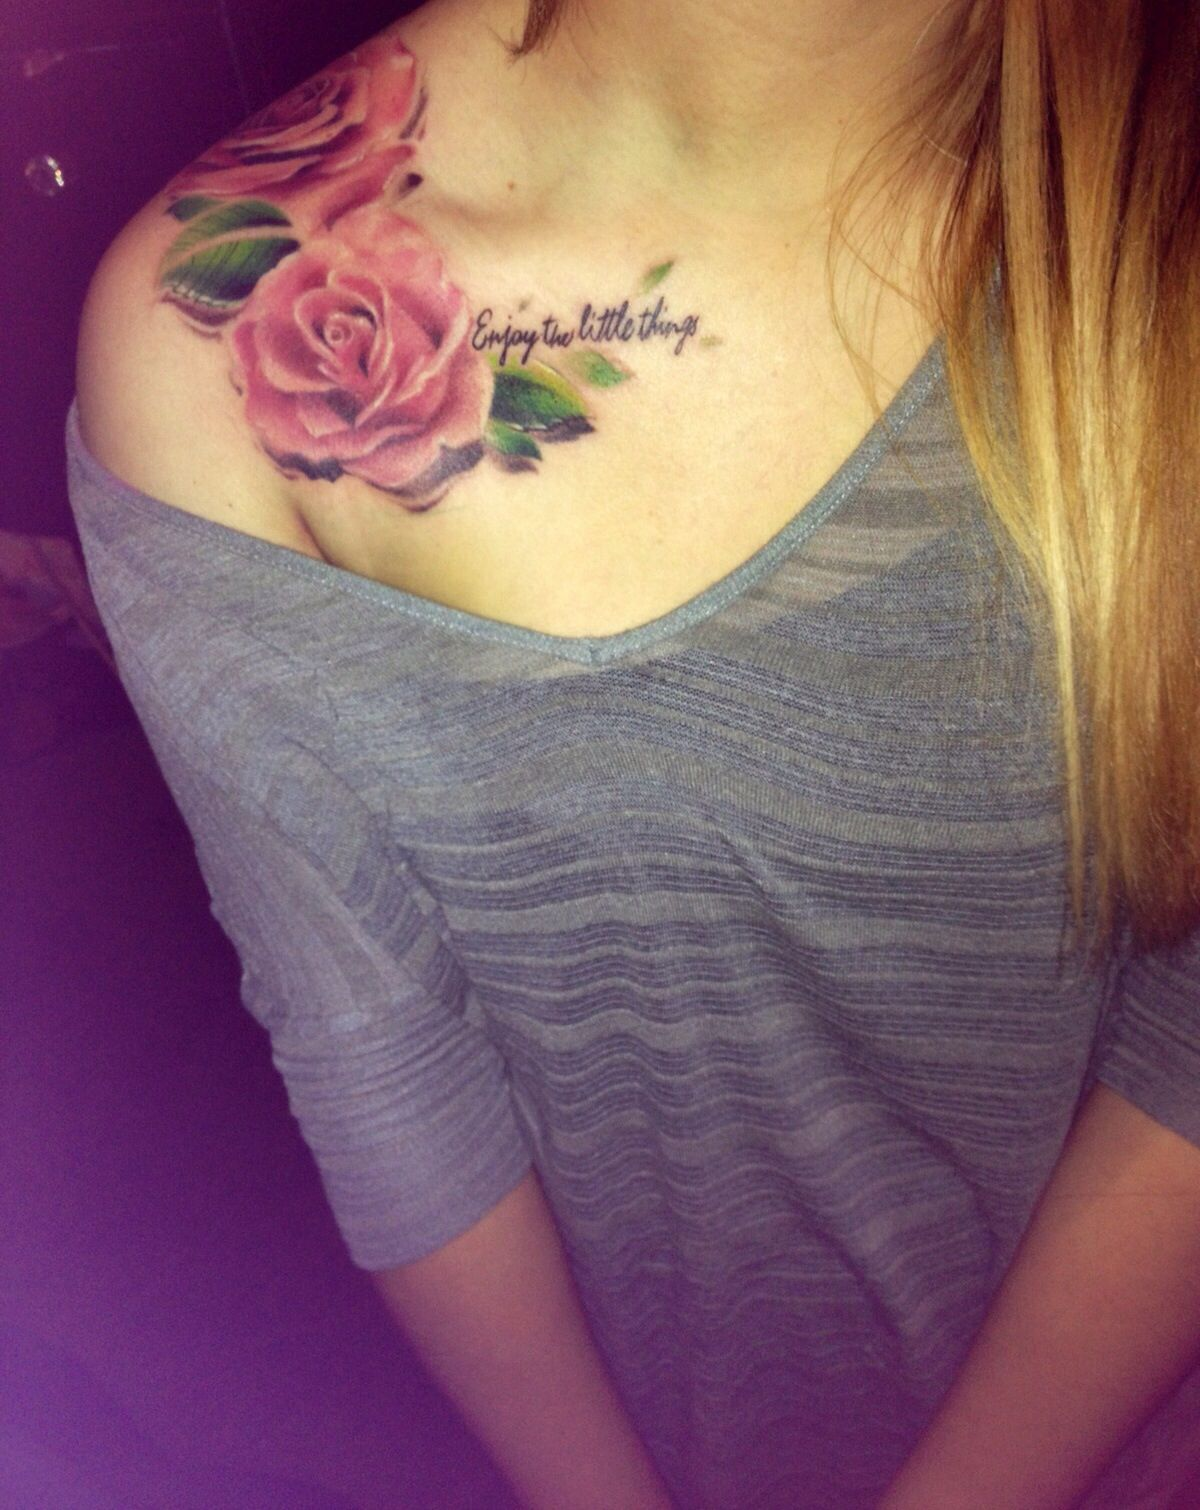 Pretty Flower Tattoo Projektek Amiket Kiprblnk Pinterest